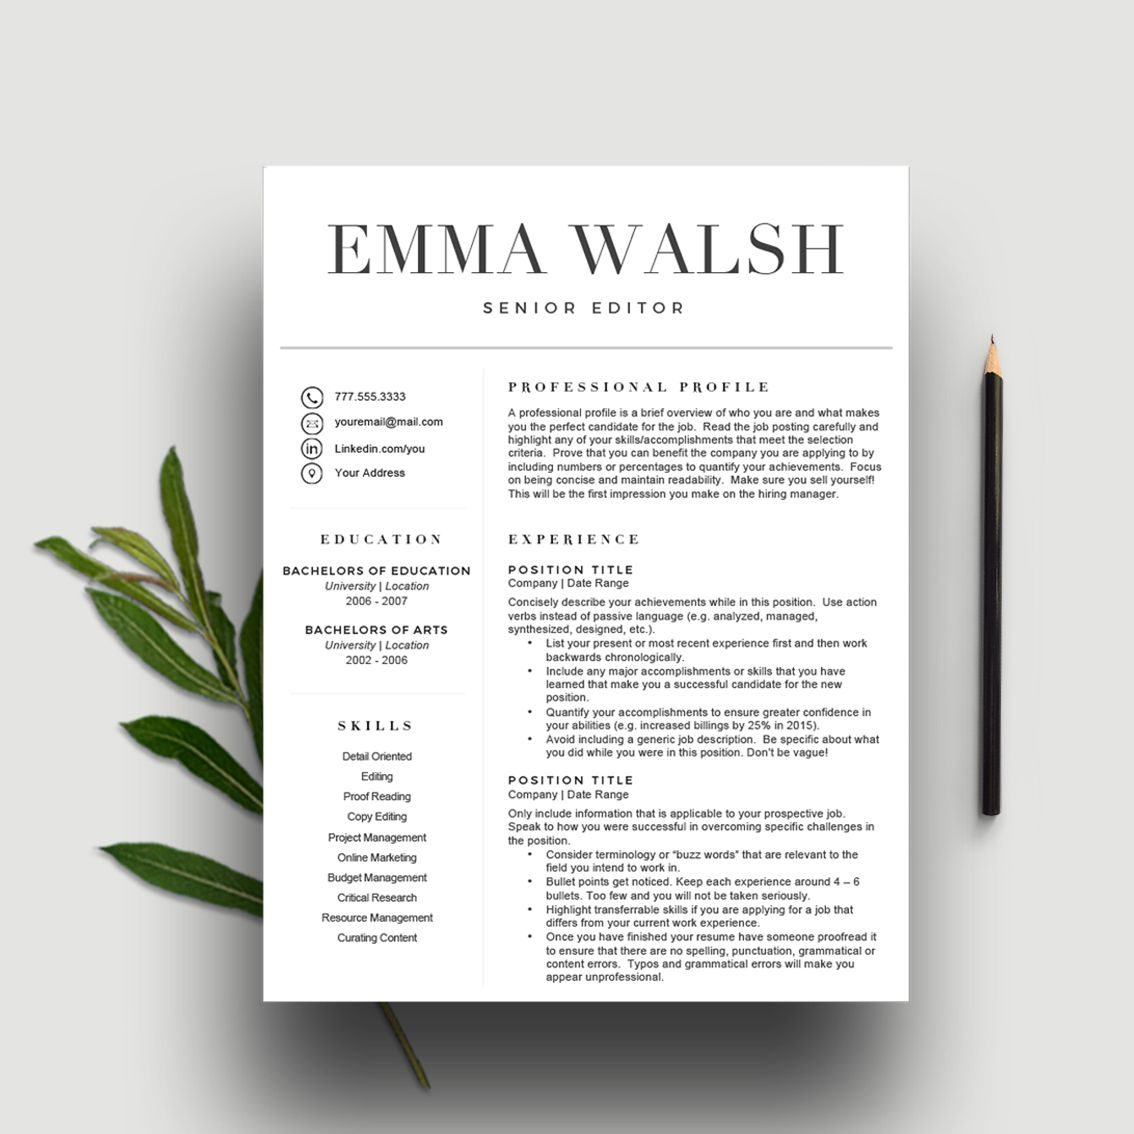 Clean And Classic Resume Template Highlight Your Skills